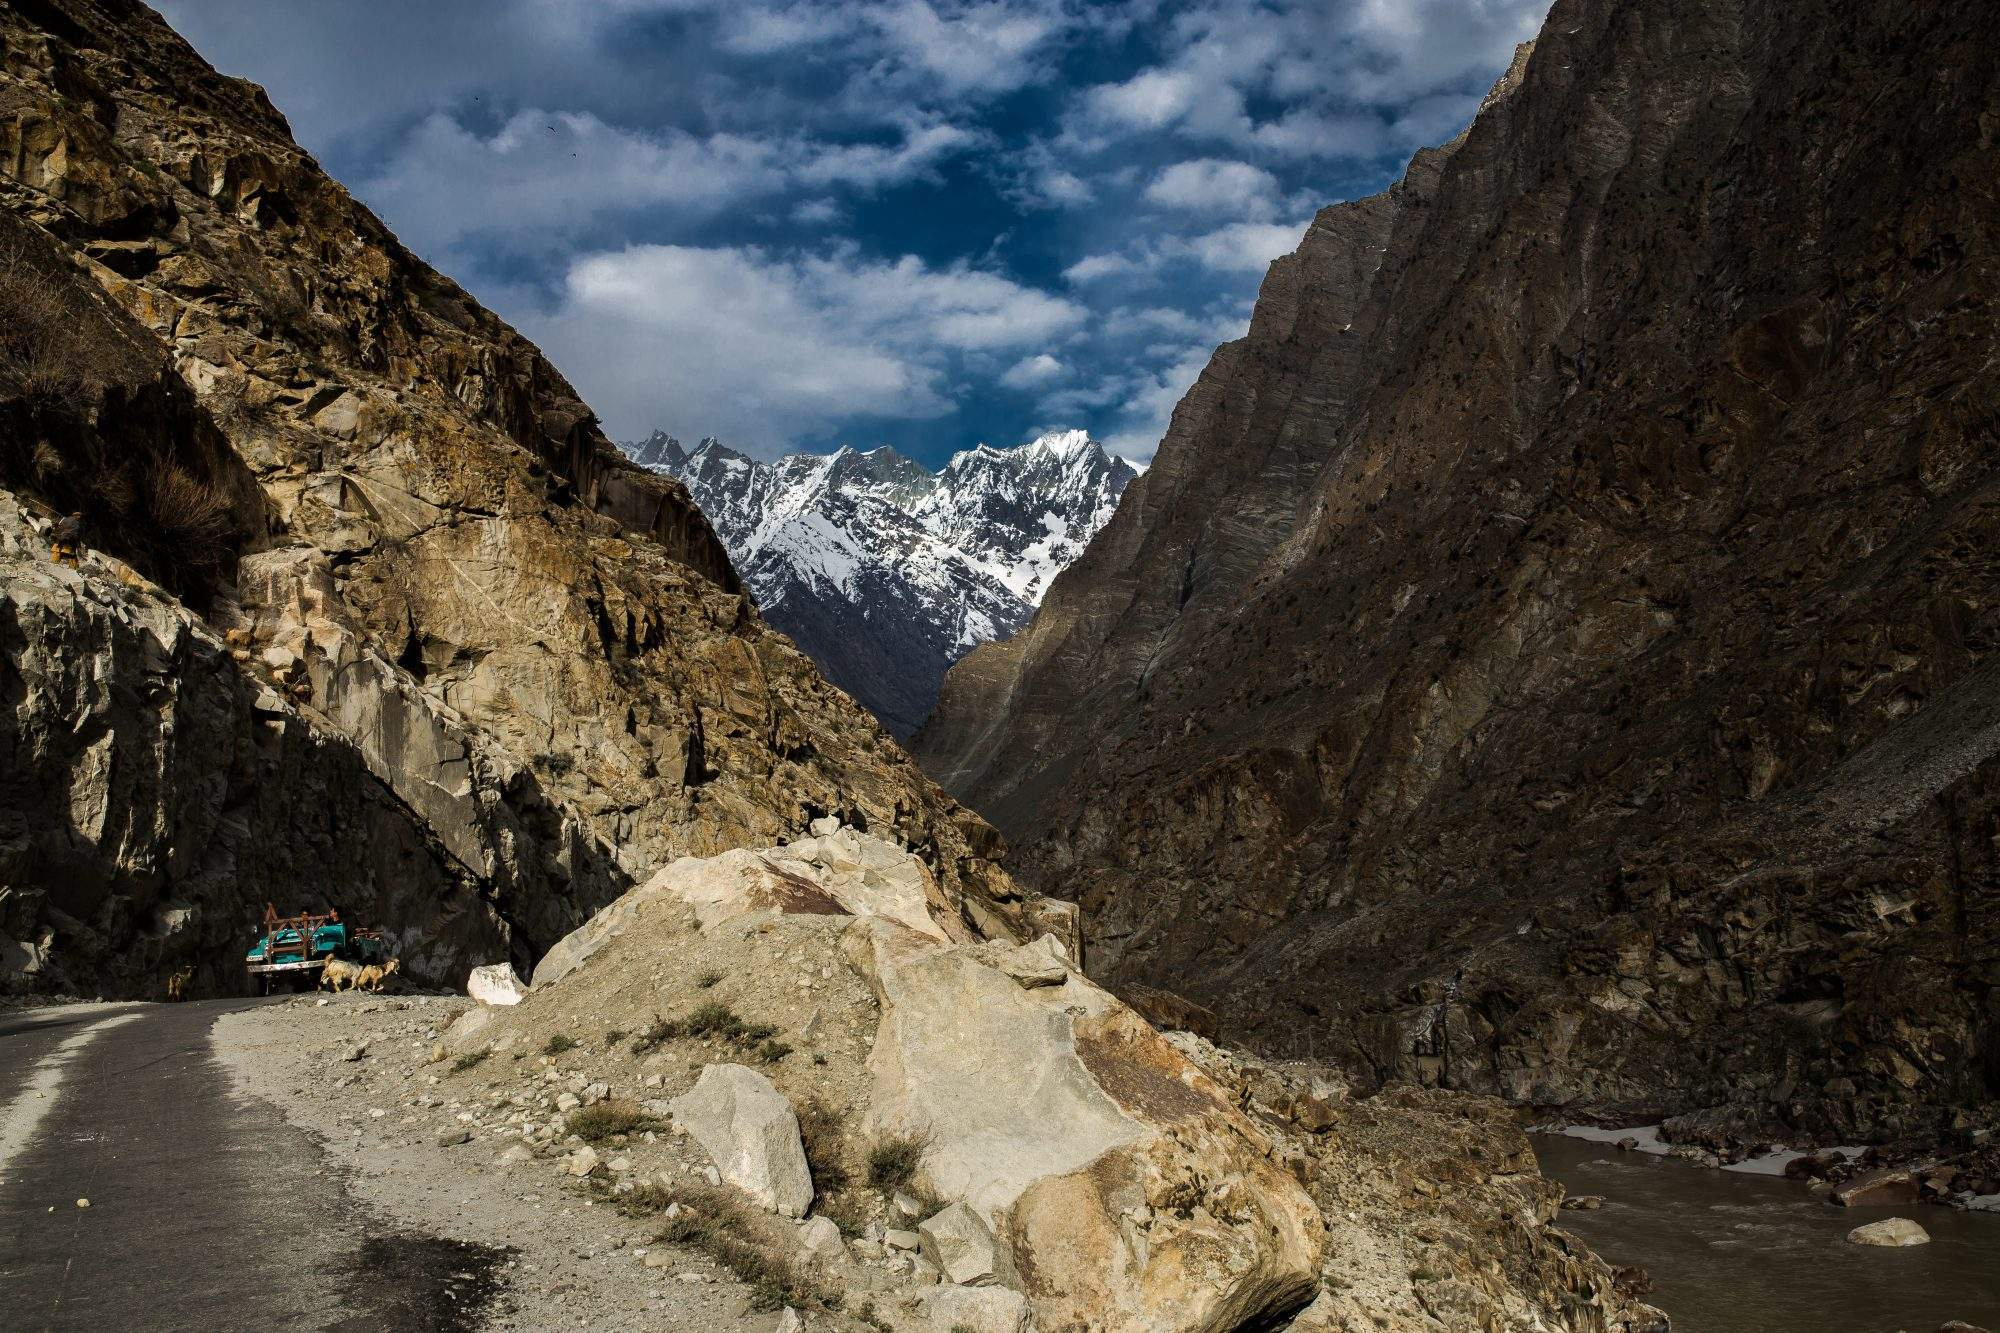 Mountains in Pakistan. India motorcycle trip with Advfactory